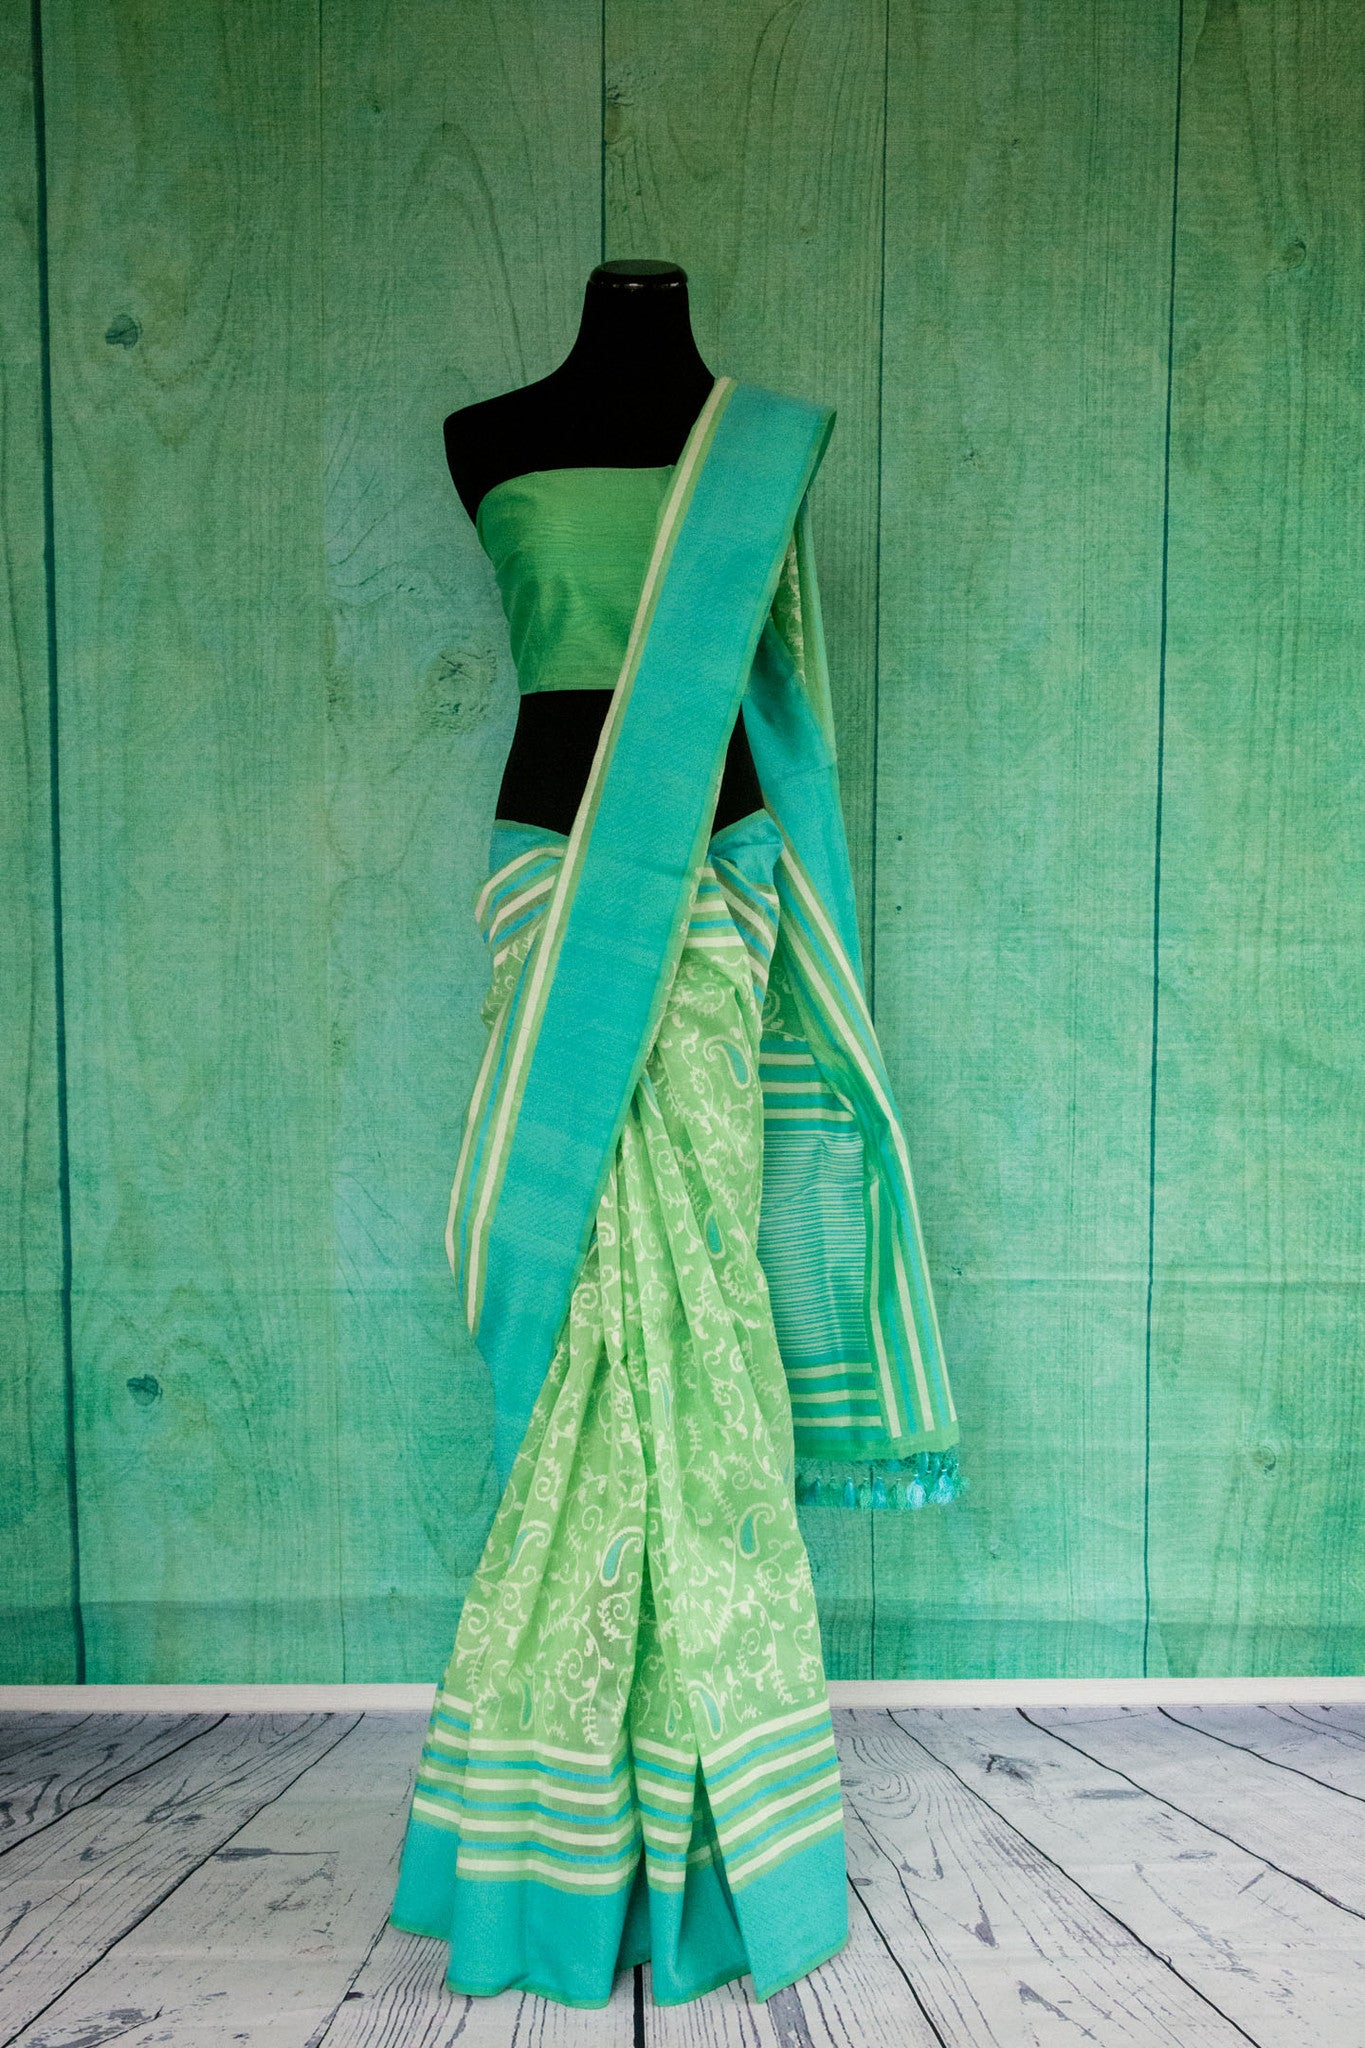 90c130 Light green traditional saree with teal border and ethnic paisley an floral pattern. Buy this woven saree from Banaras online at Pure elegance - Our Indian fashion store in USA.